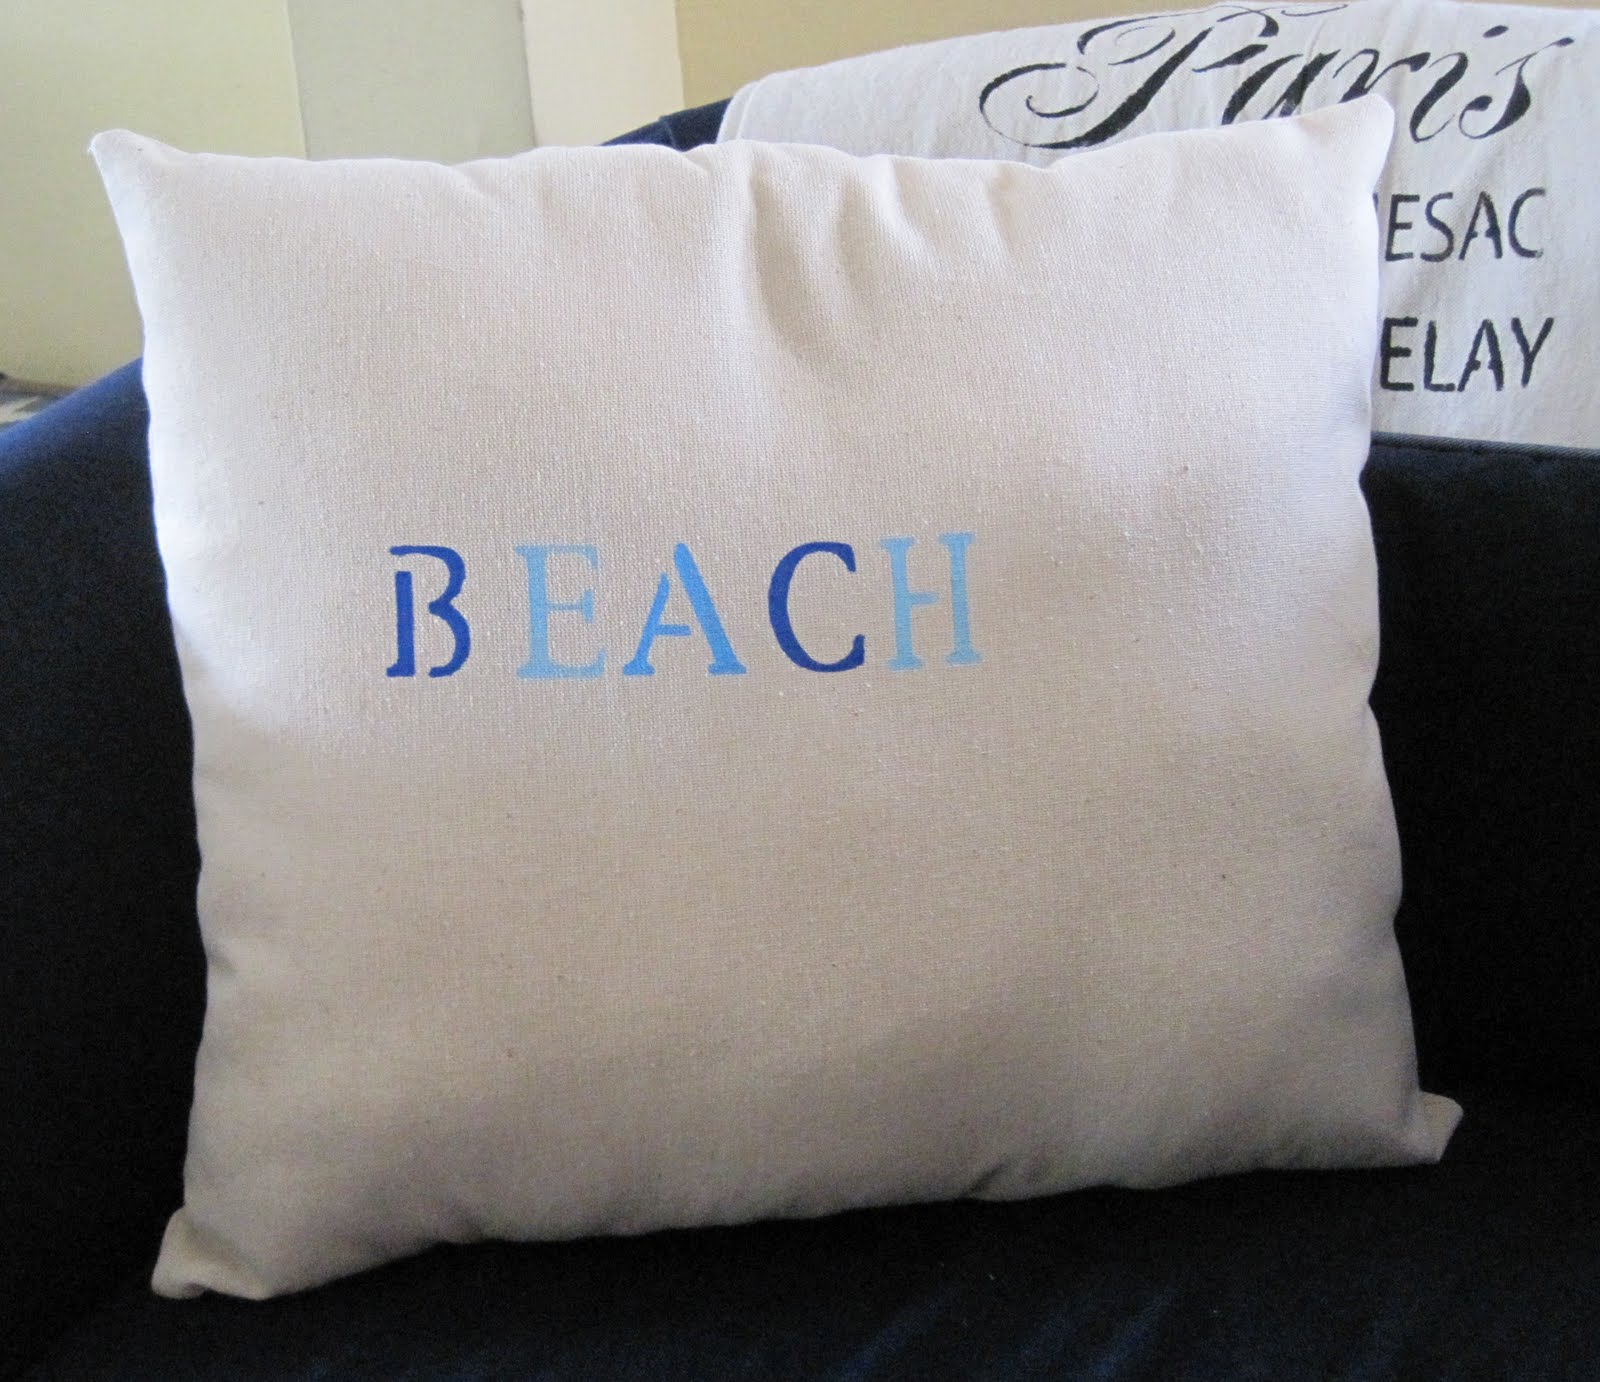 habidecor ivory pillow towels portofino pillows orange com and towel abyss beach products flandb